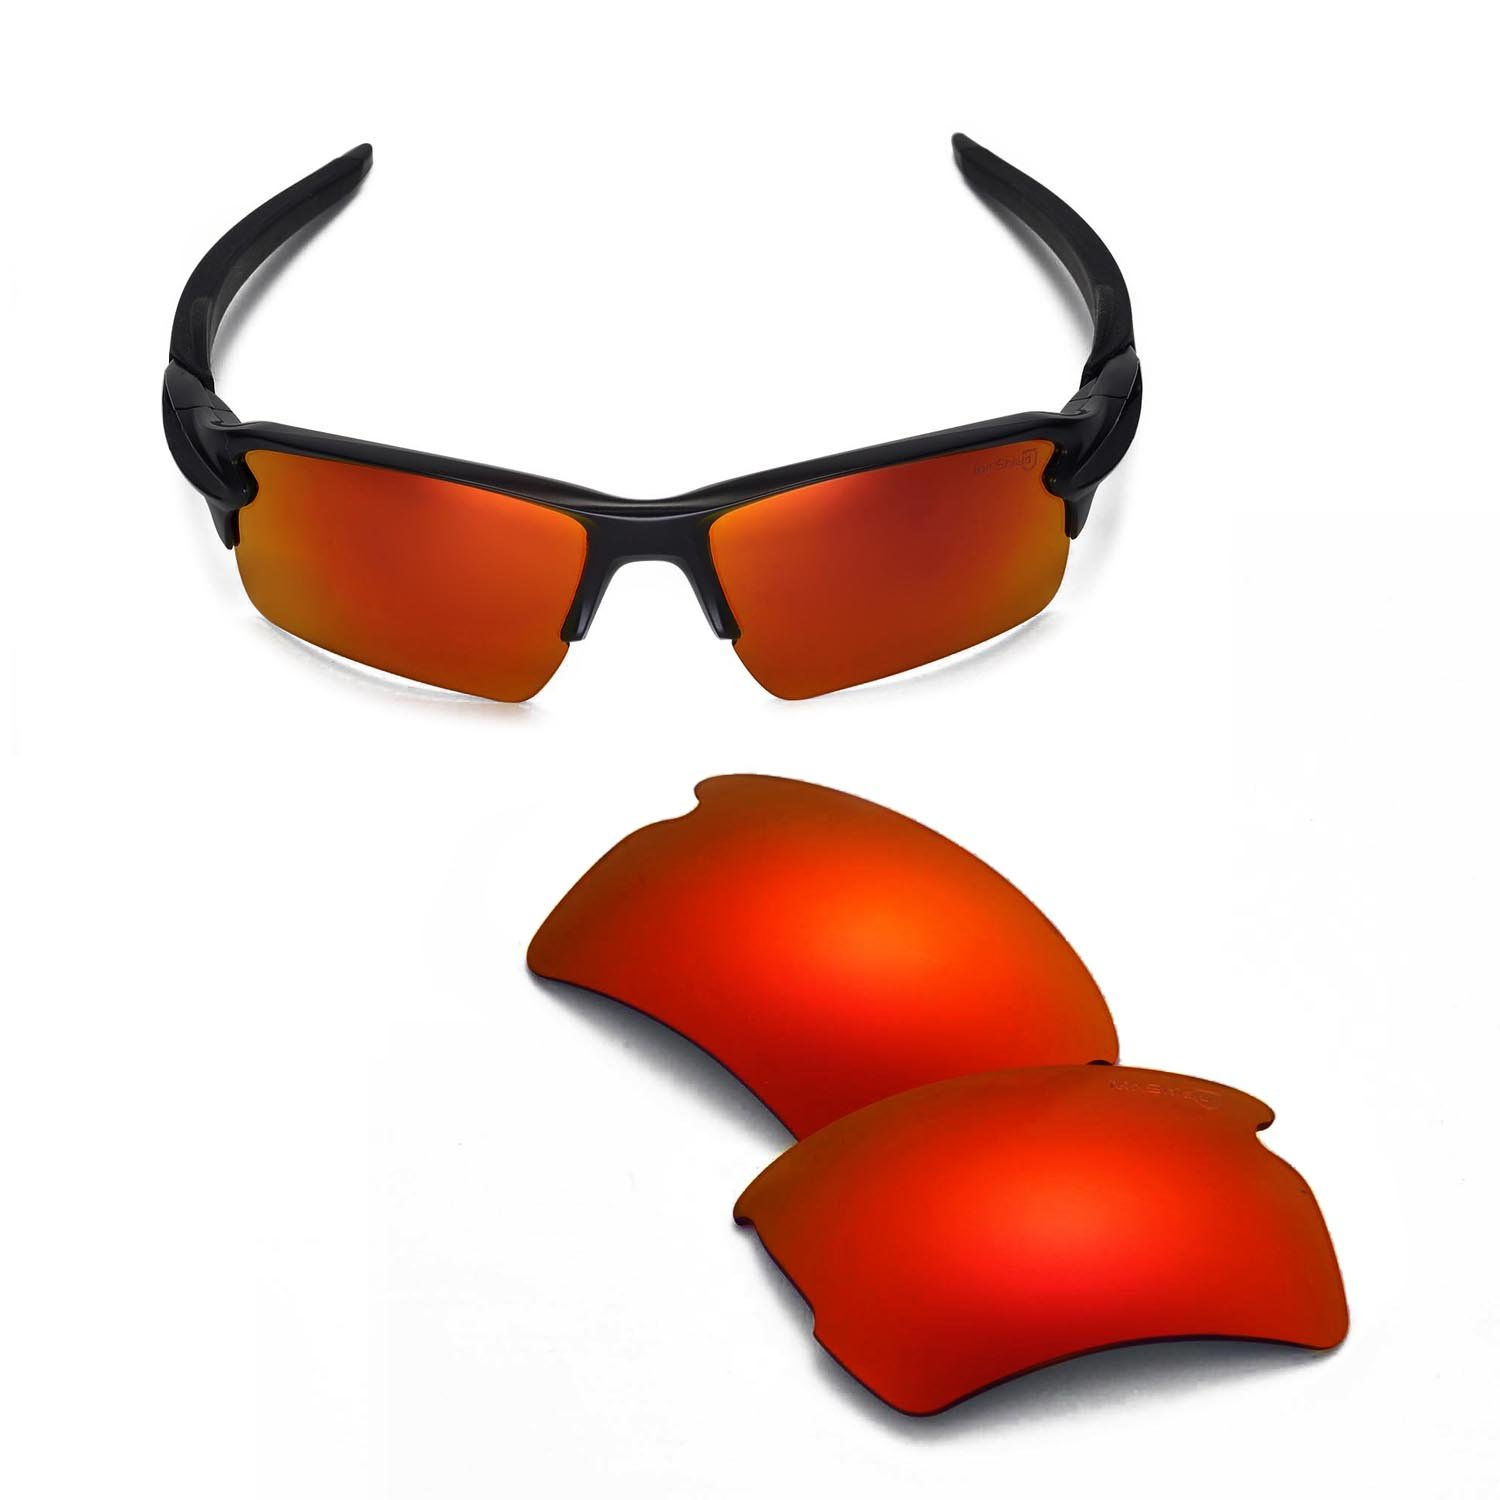 Walleva Replacement Lenses For Oakley Flak 2.0 XL Sunglasses - 14 Options Available (Fire Red - Mr. Shield Polarized)